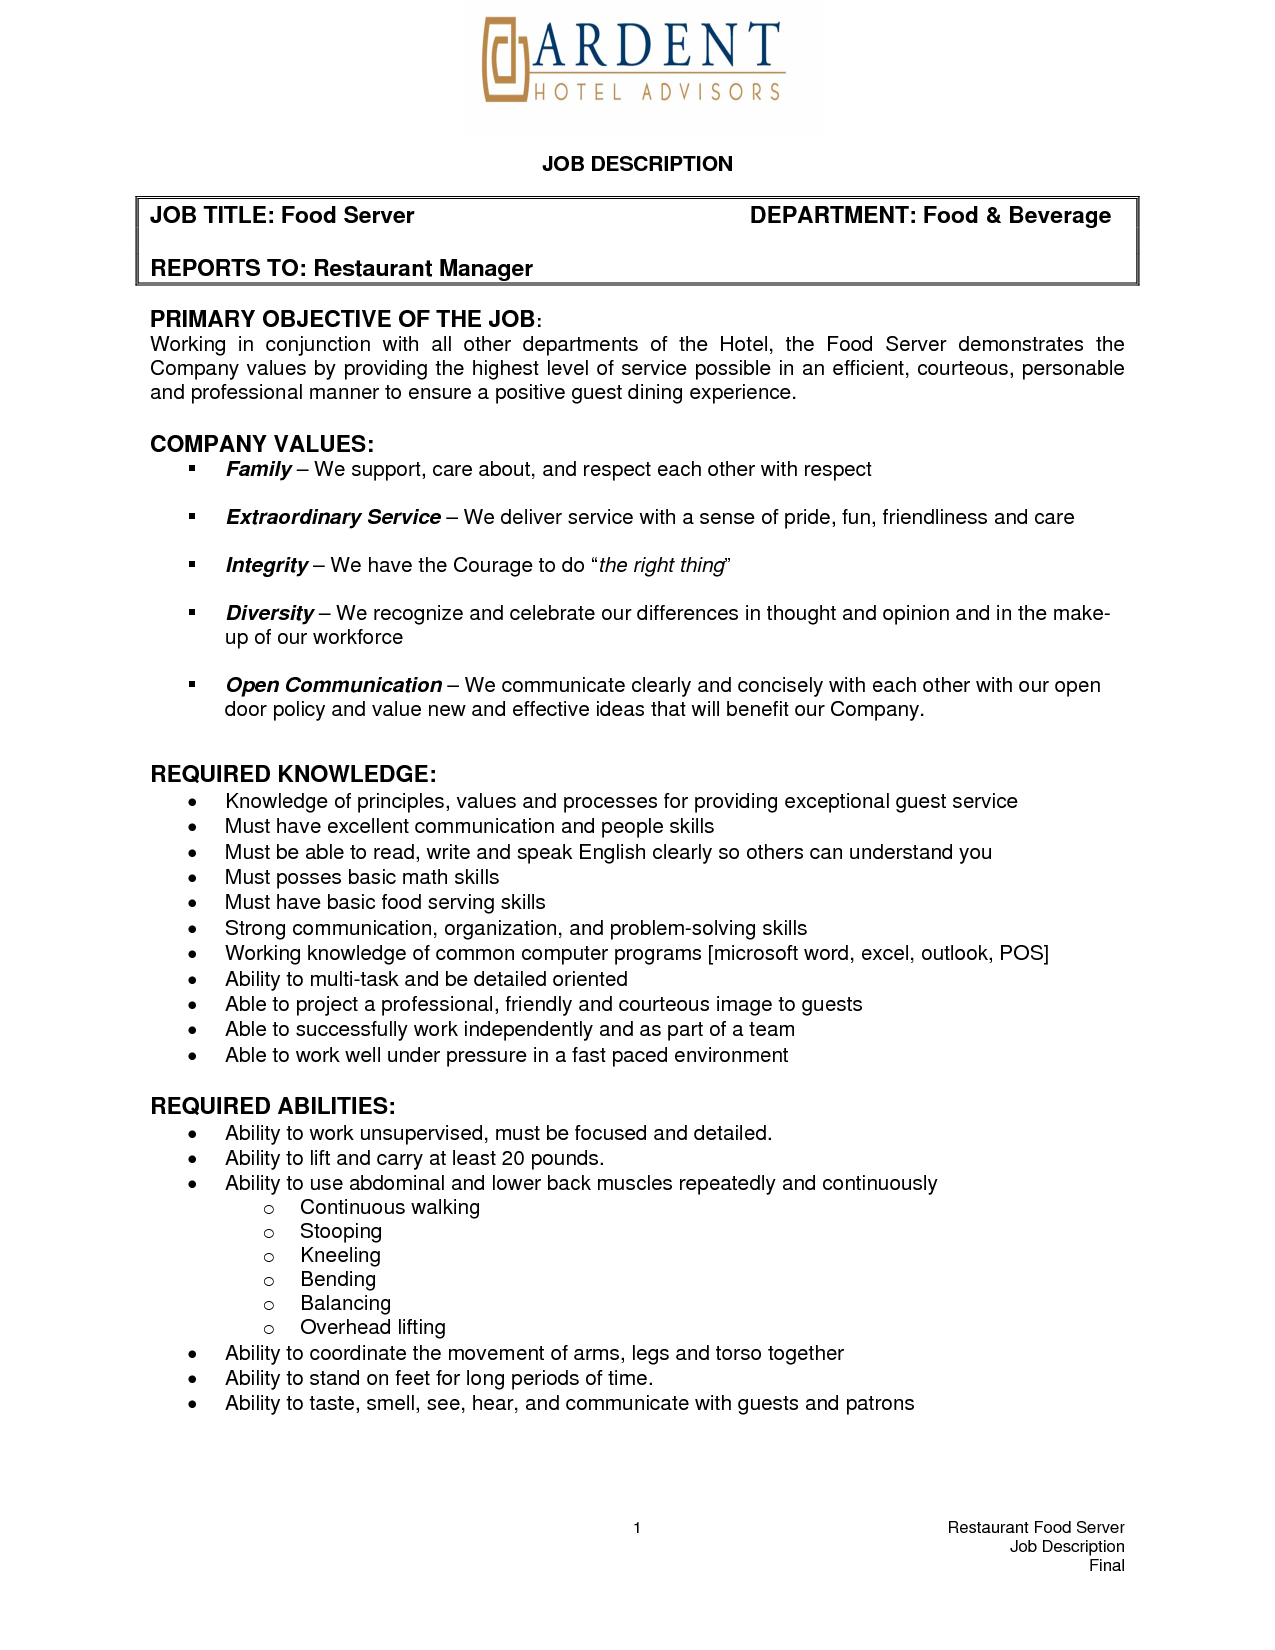 Restaurant Resume Objective Banquet Server Resume Example  Httpwwwresumecareer